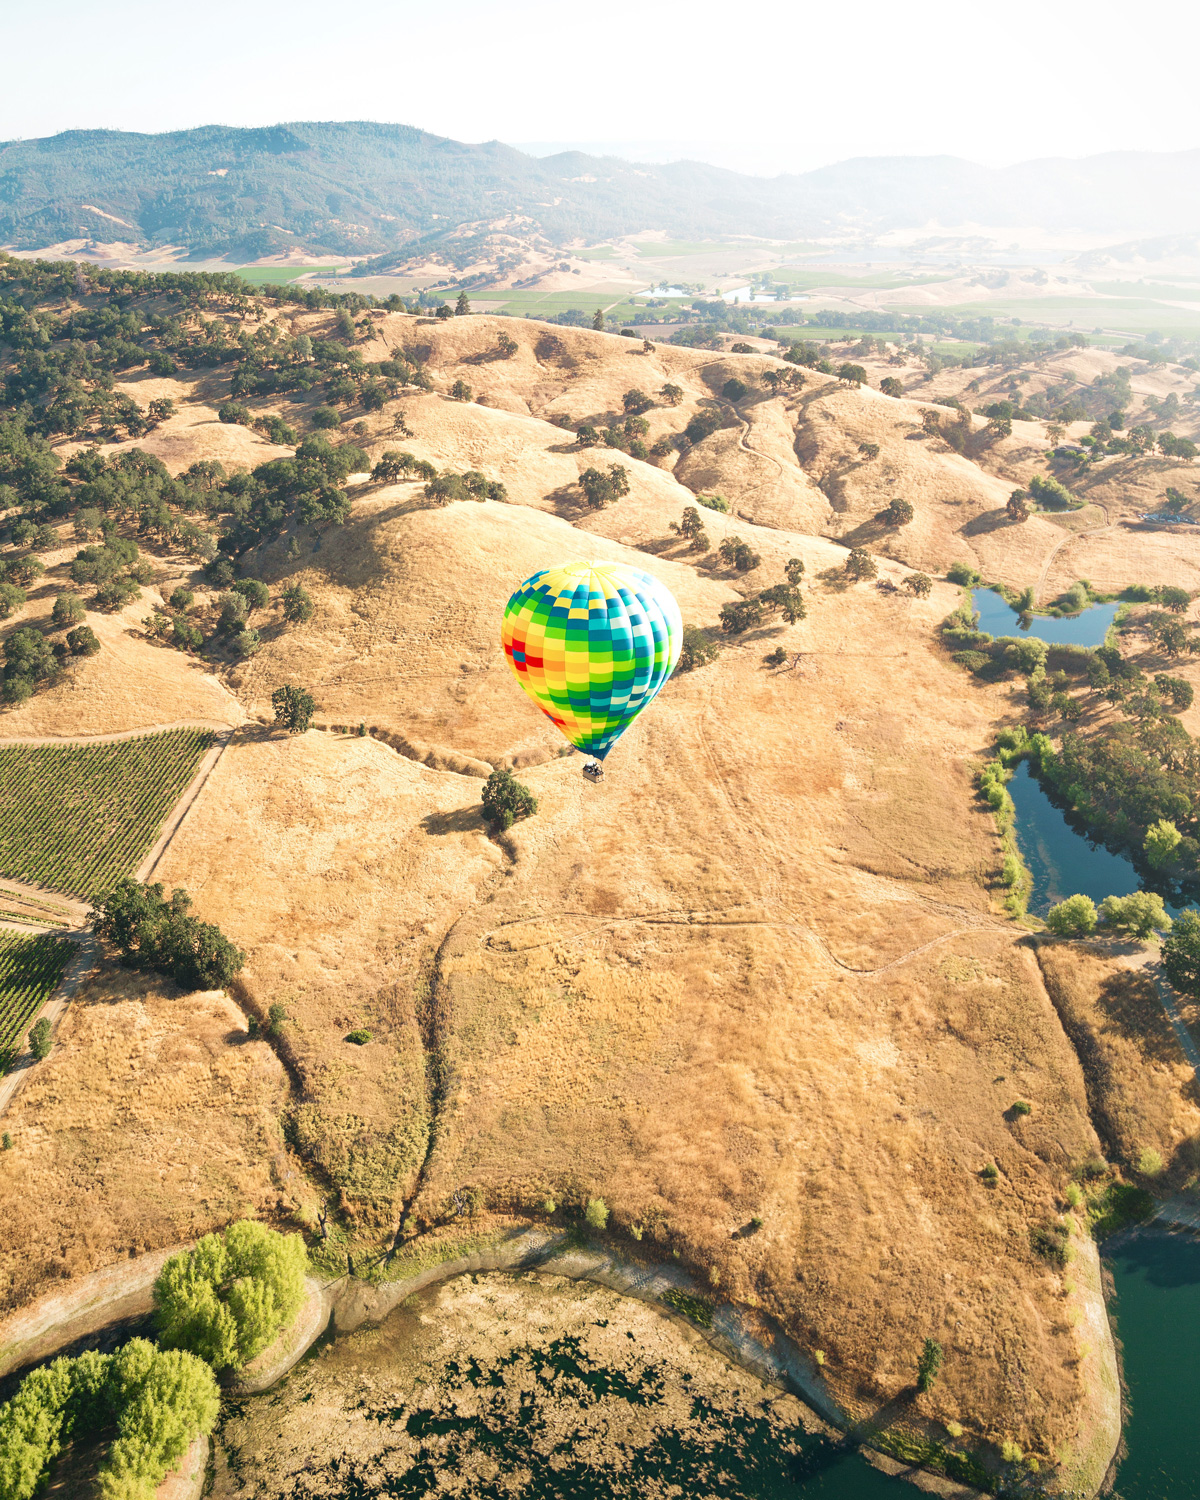 Napa Valley by Air Balloon - view of vineyards - Photo by Sebastien Gabriel